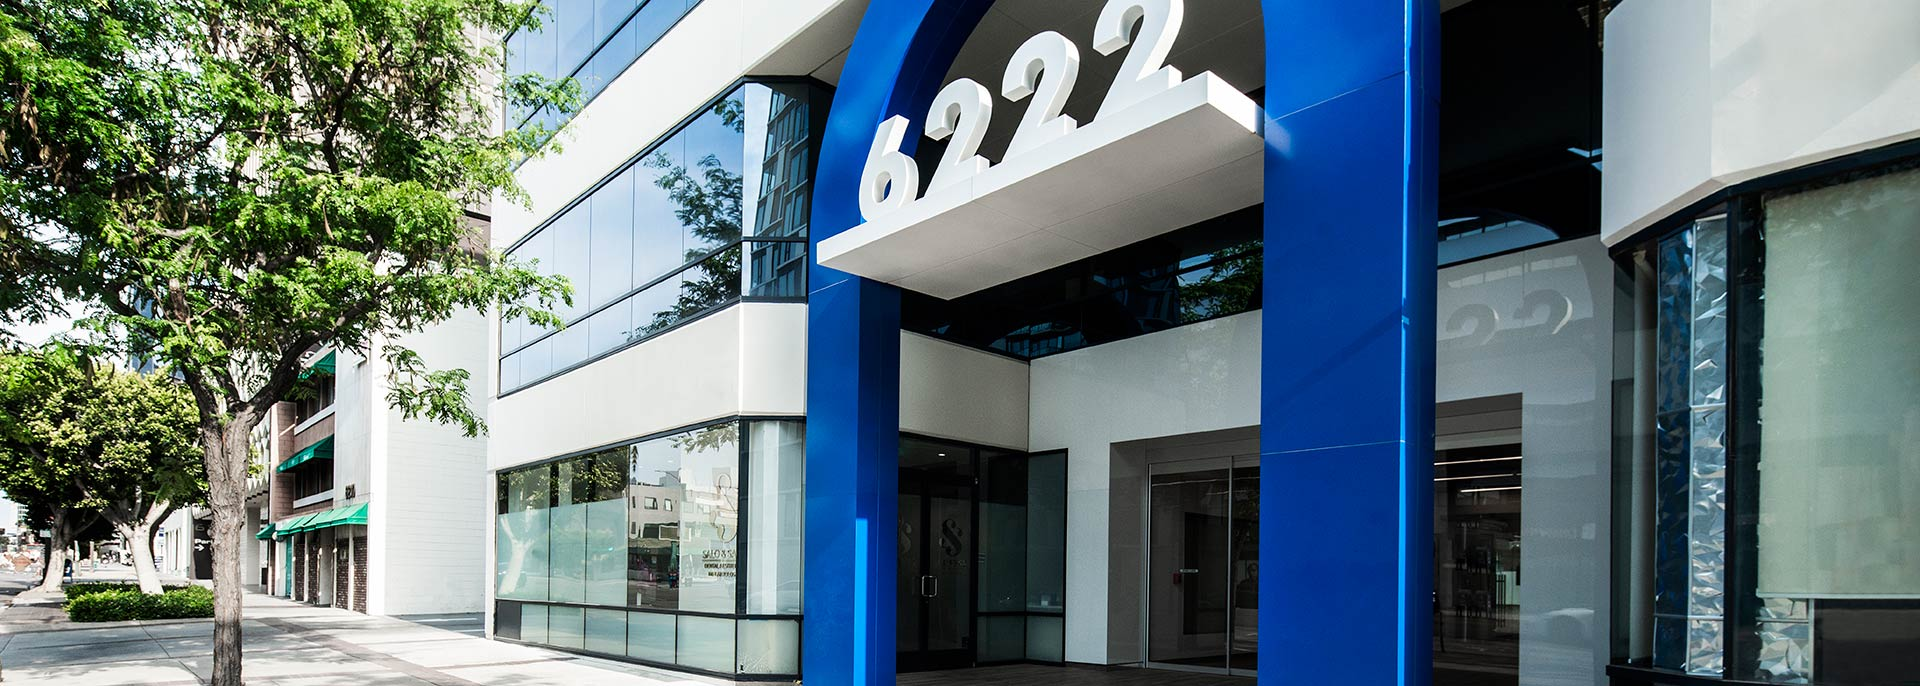 Street entrance to 6222 Wilshire, a Class-A Six-Story Los Angeles office building for rent